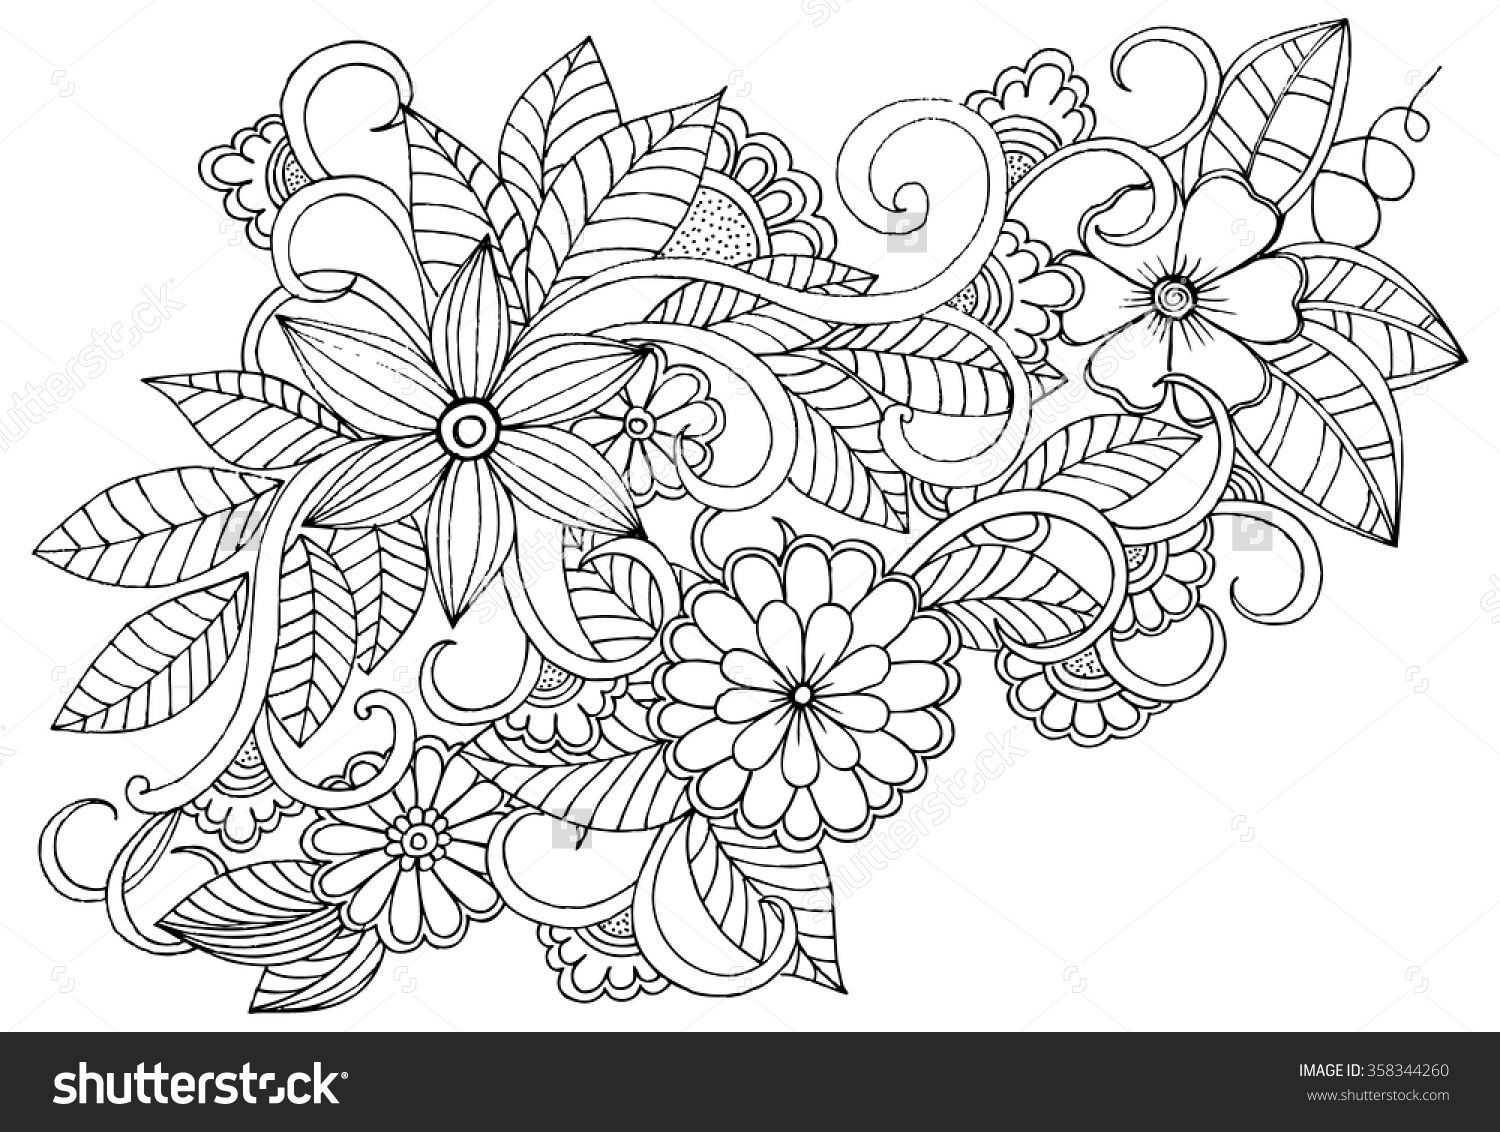 Doodle Floral Pattern In Black And White Page For Coloring Book